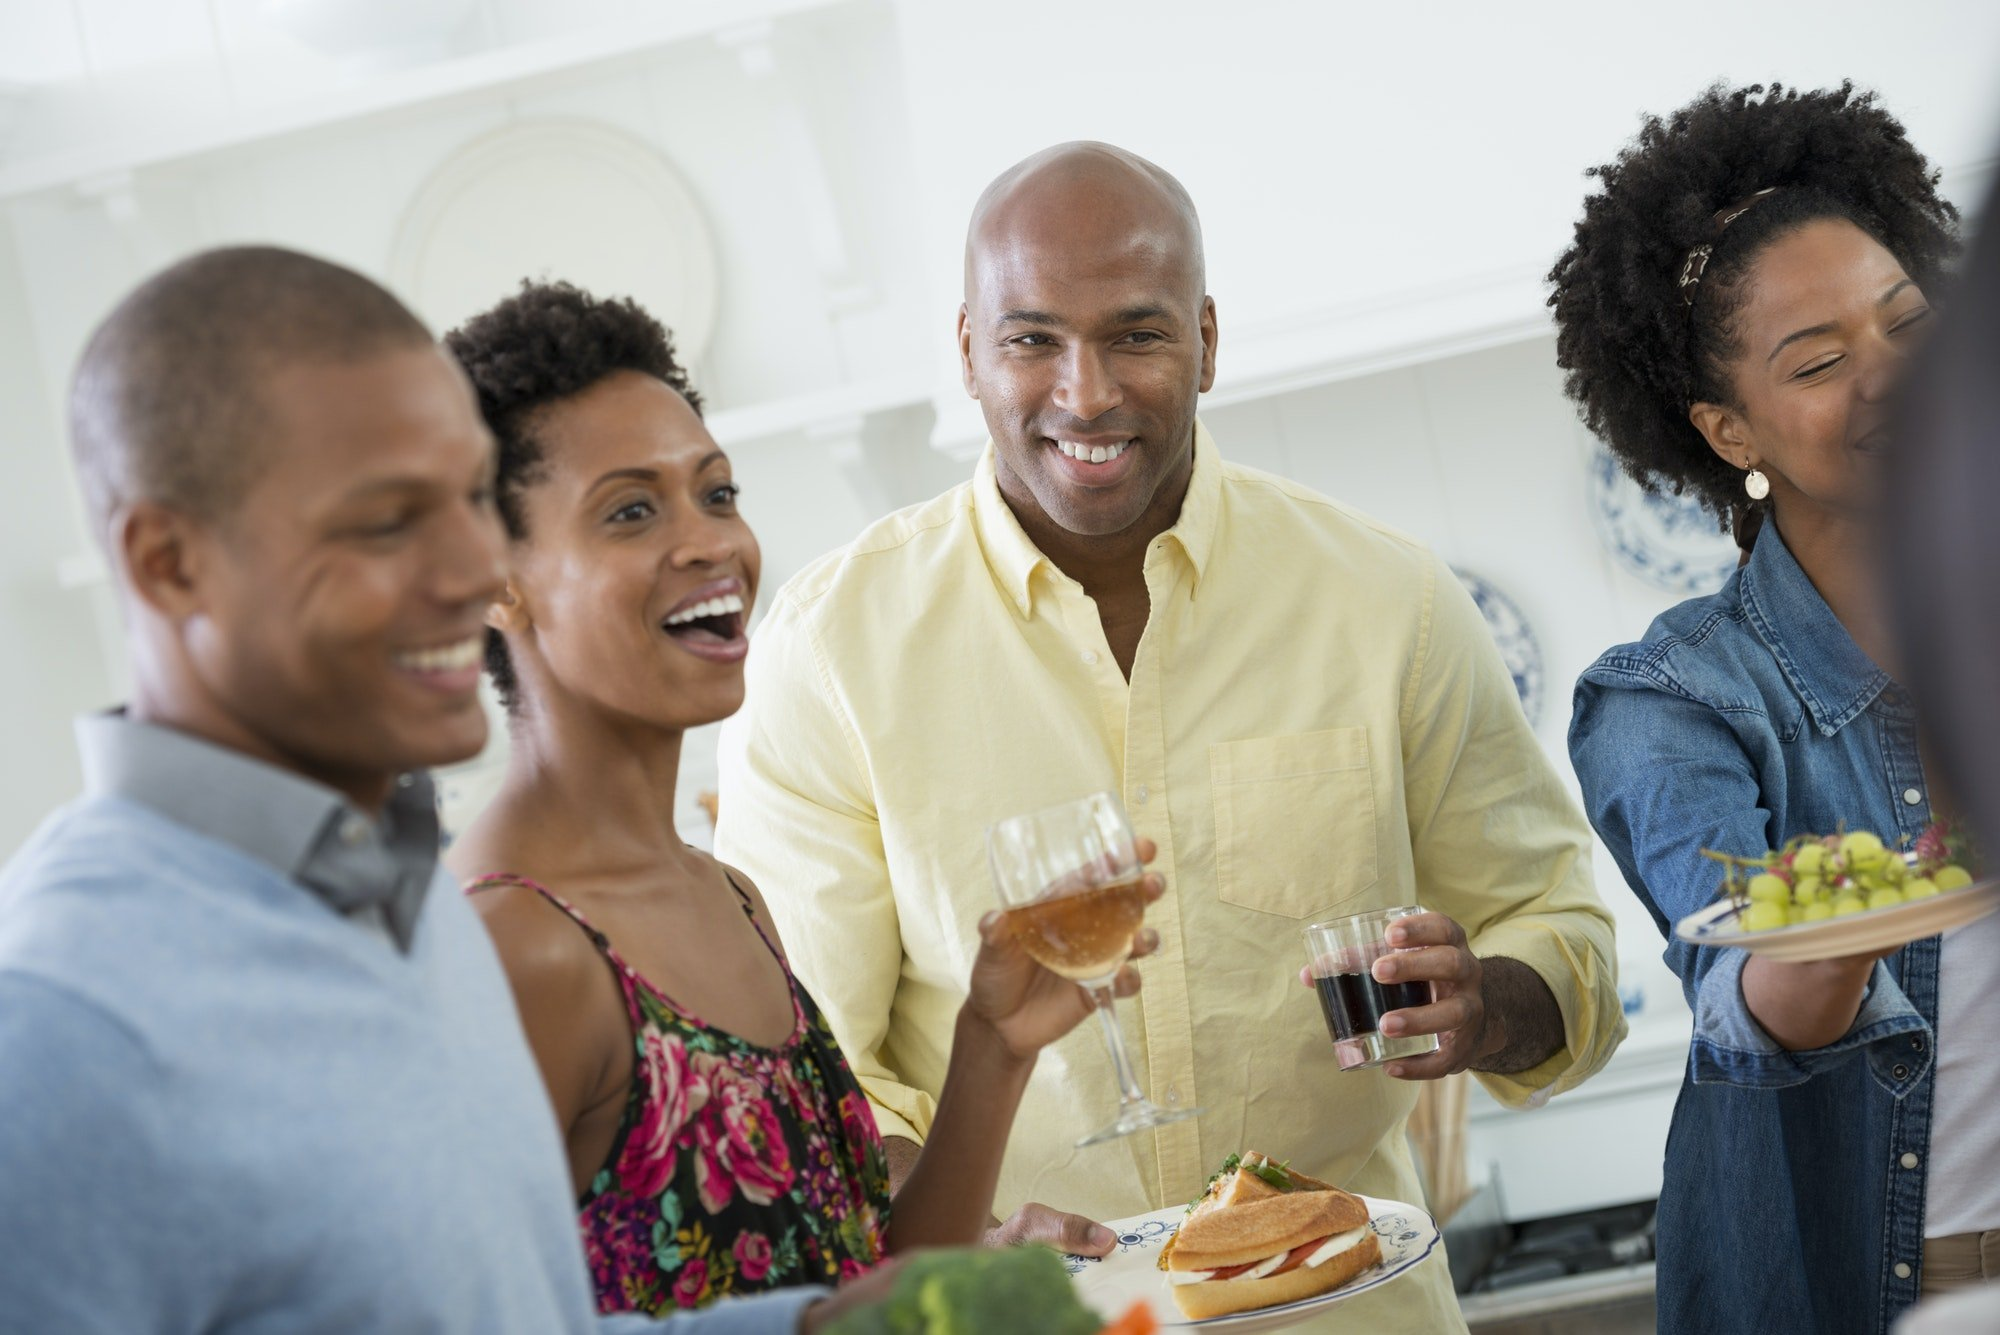 A group of people gathering for a party and a meal. People at an informal office party.